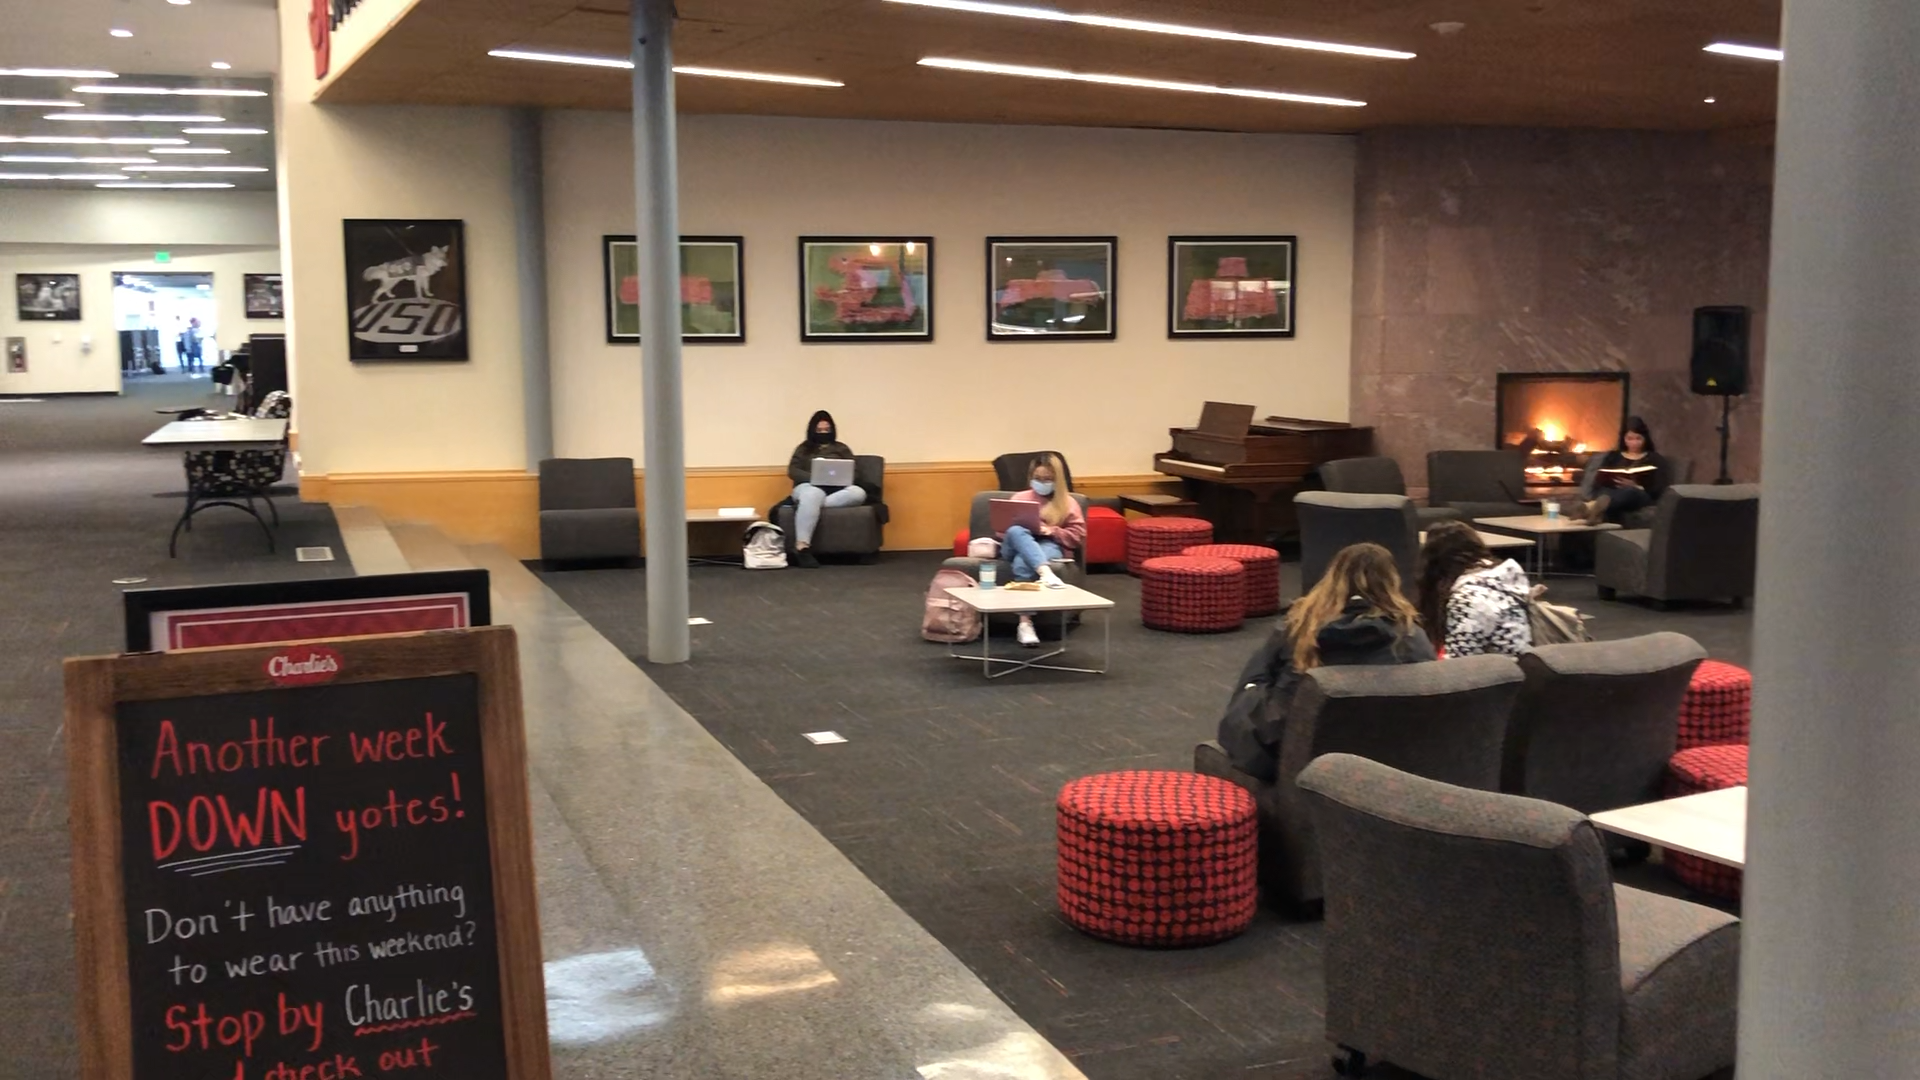 People sitting in a common area